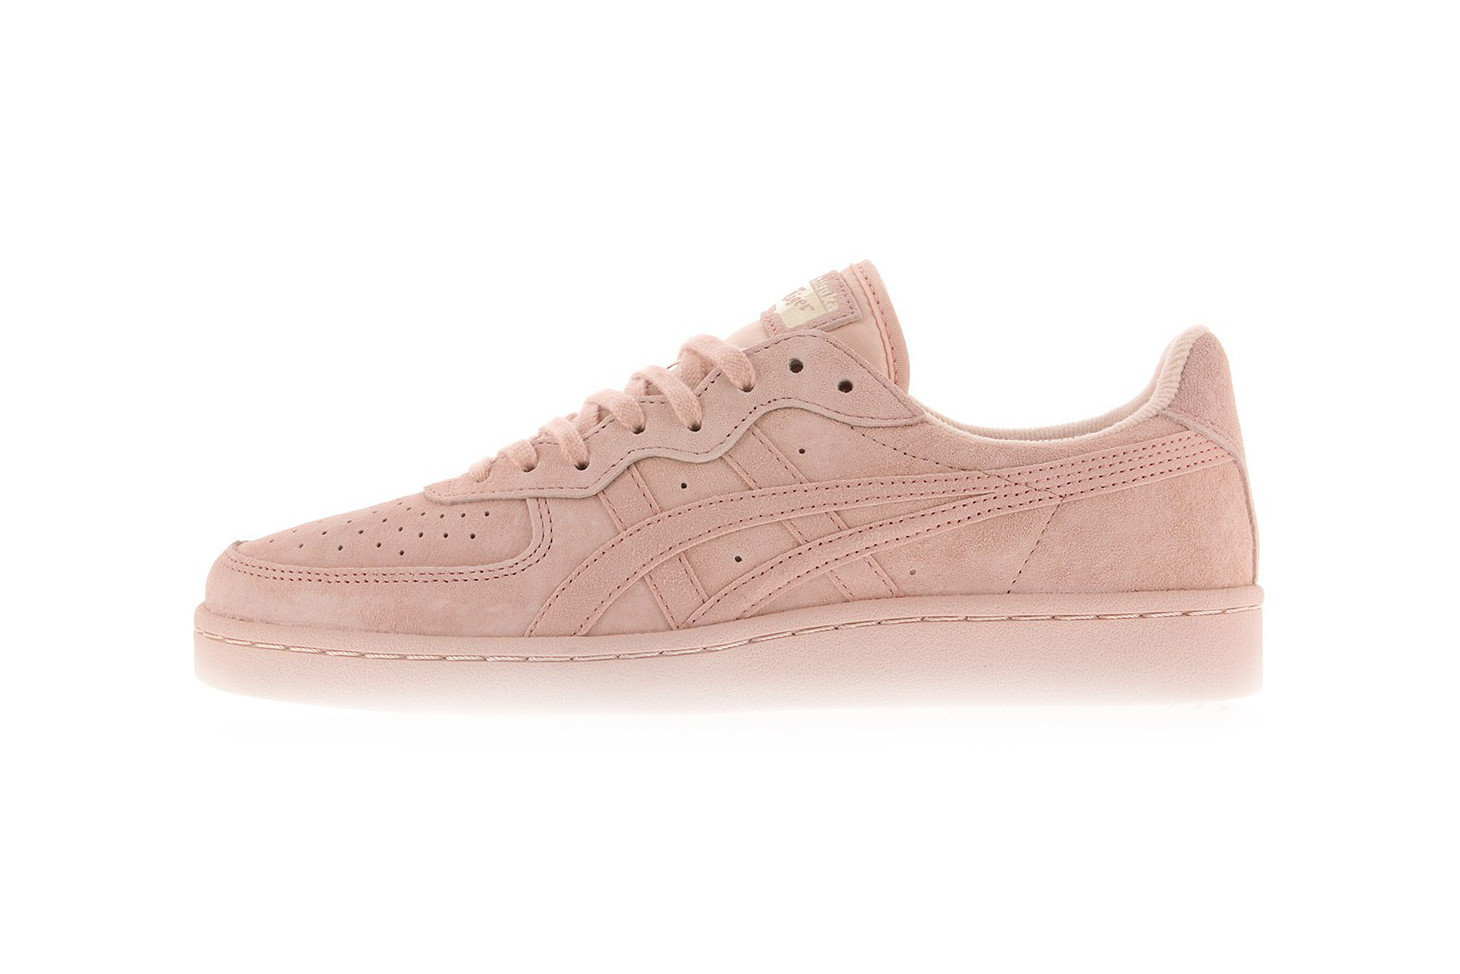 ASICS Onitsuka Tiger GSM Is Pretty in